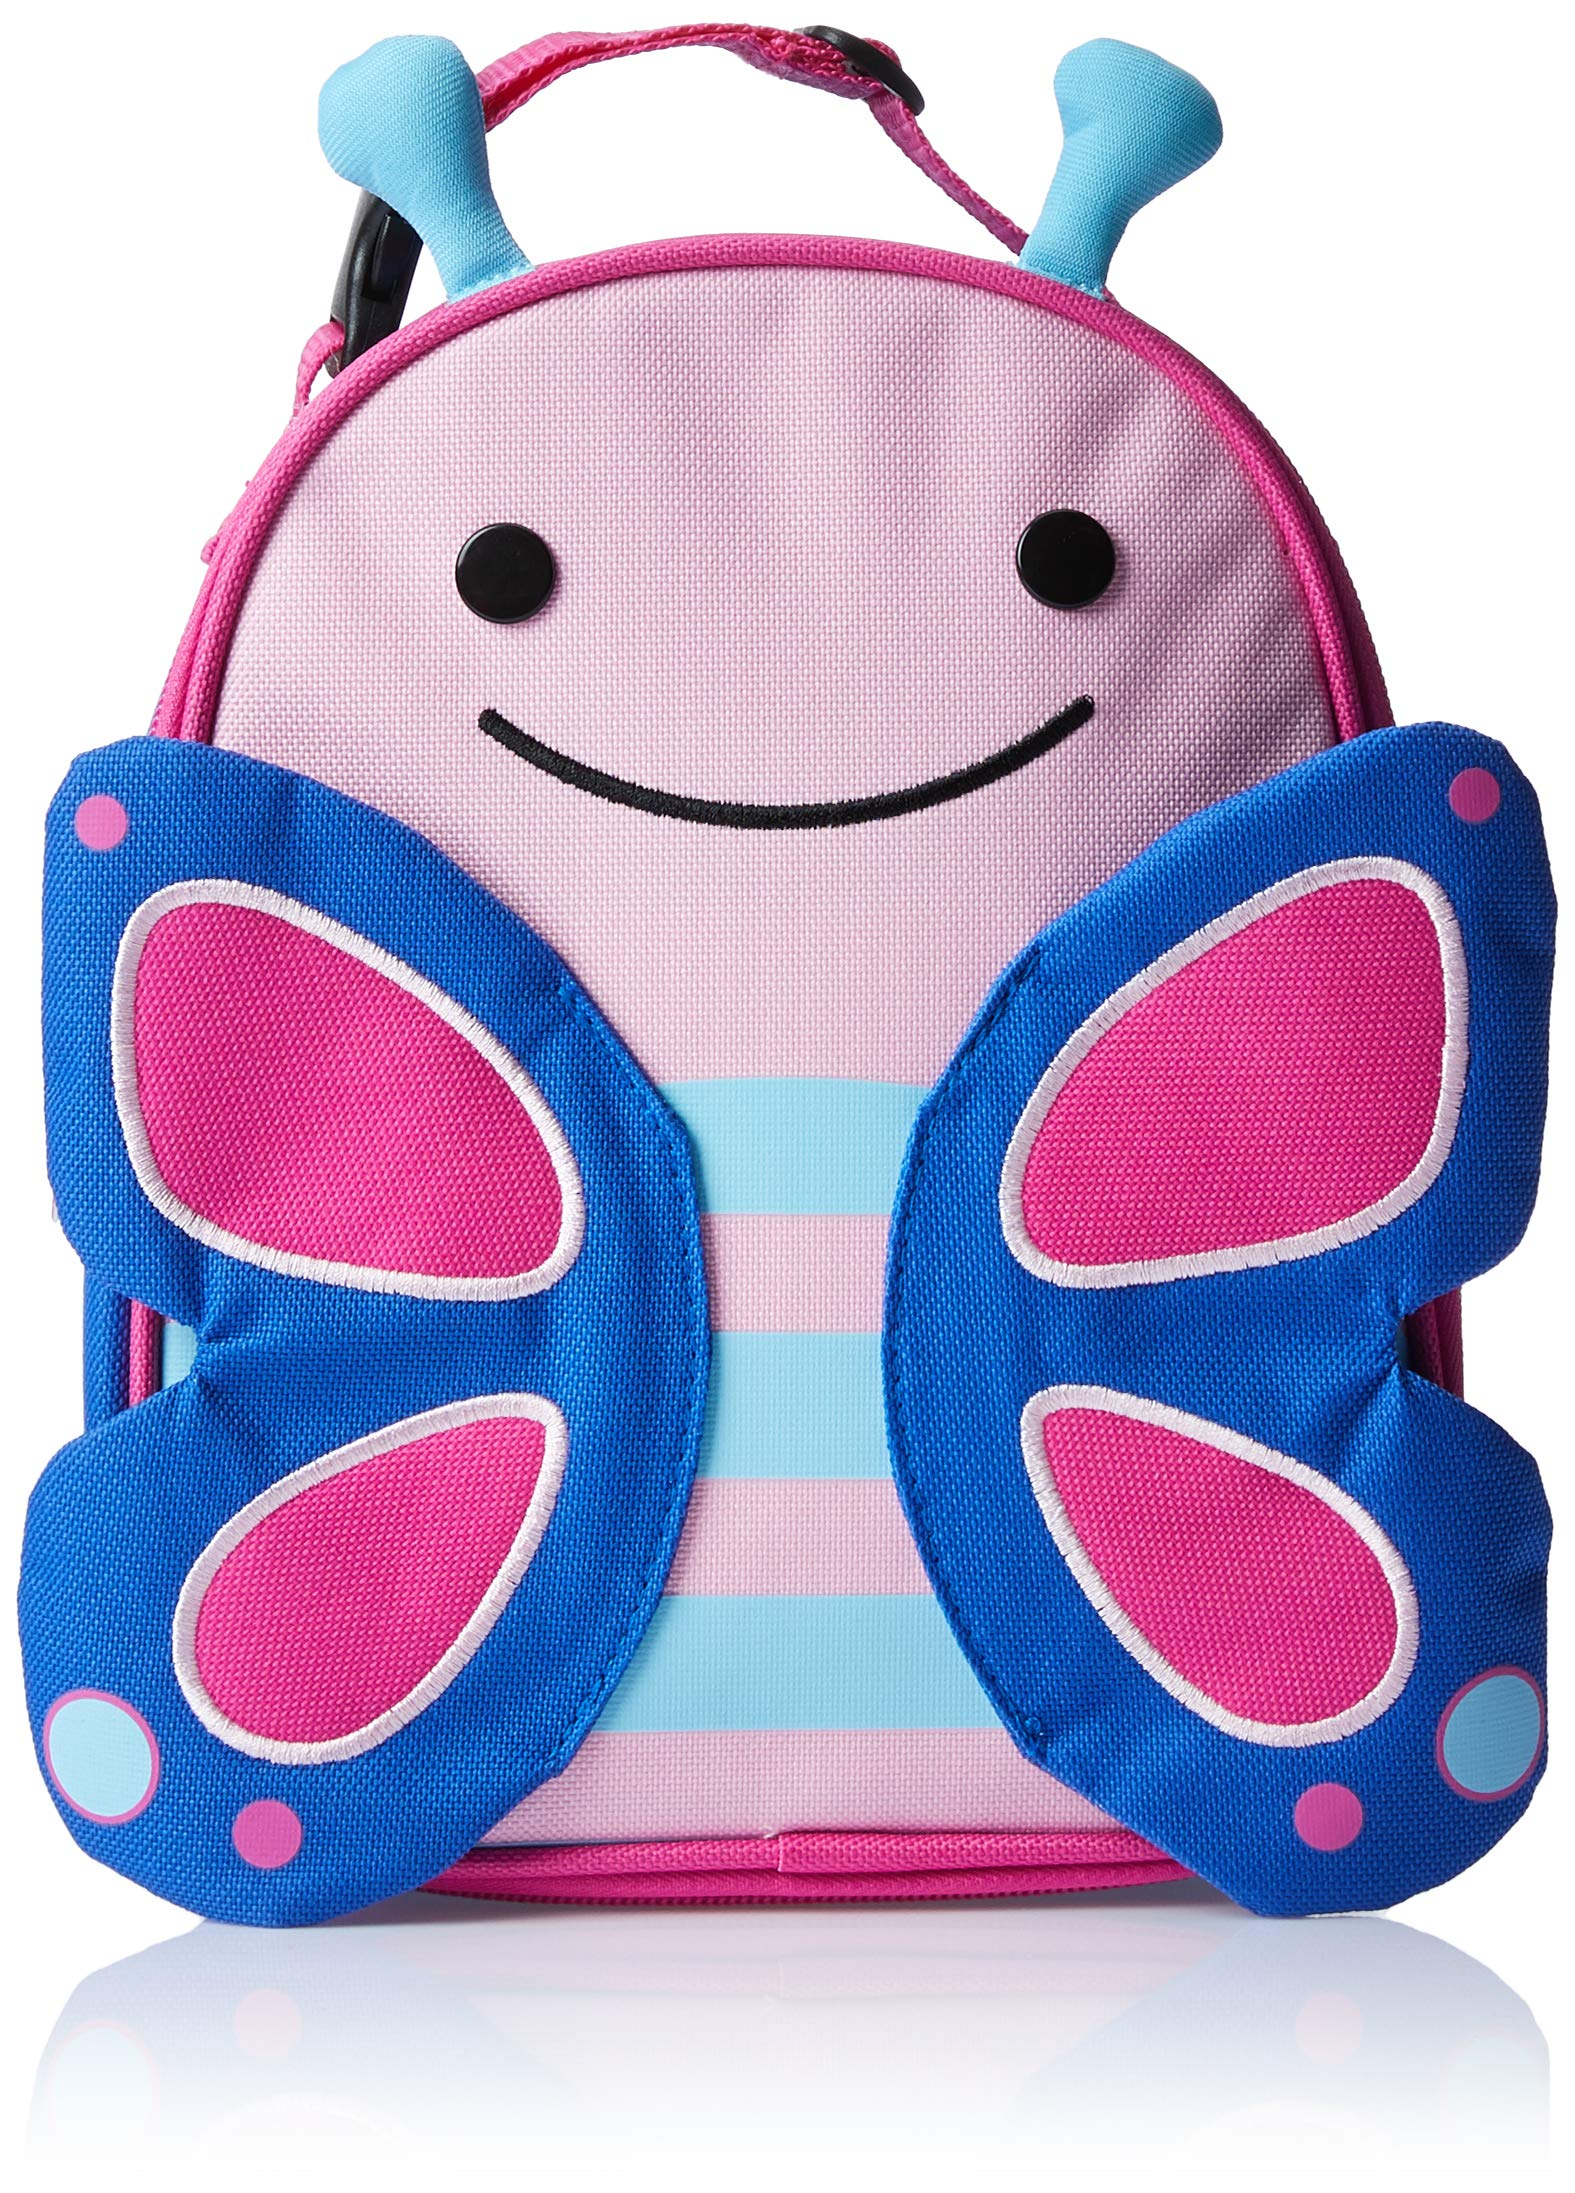 Skip Hop Zoo Kids Insulated Lunch Box, Blossom Butterfly, Pink by Skip Hop